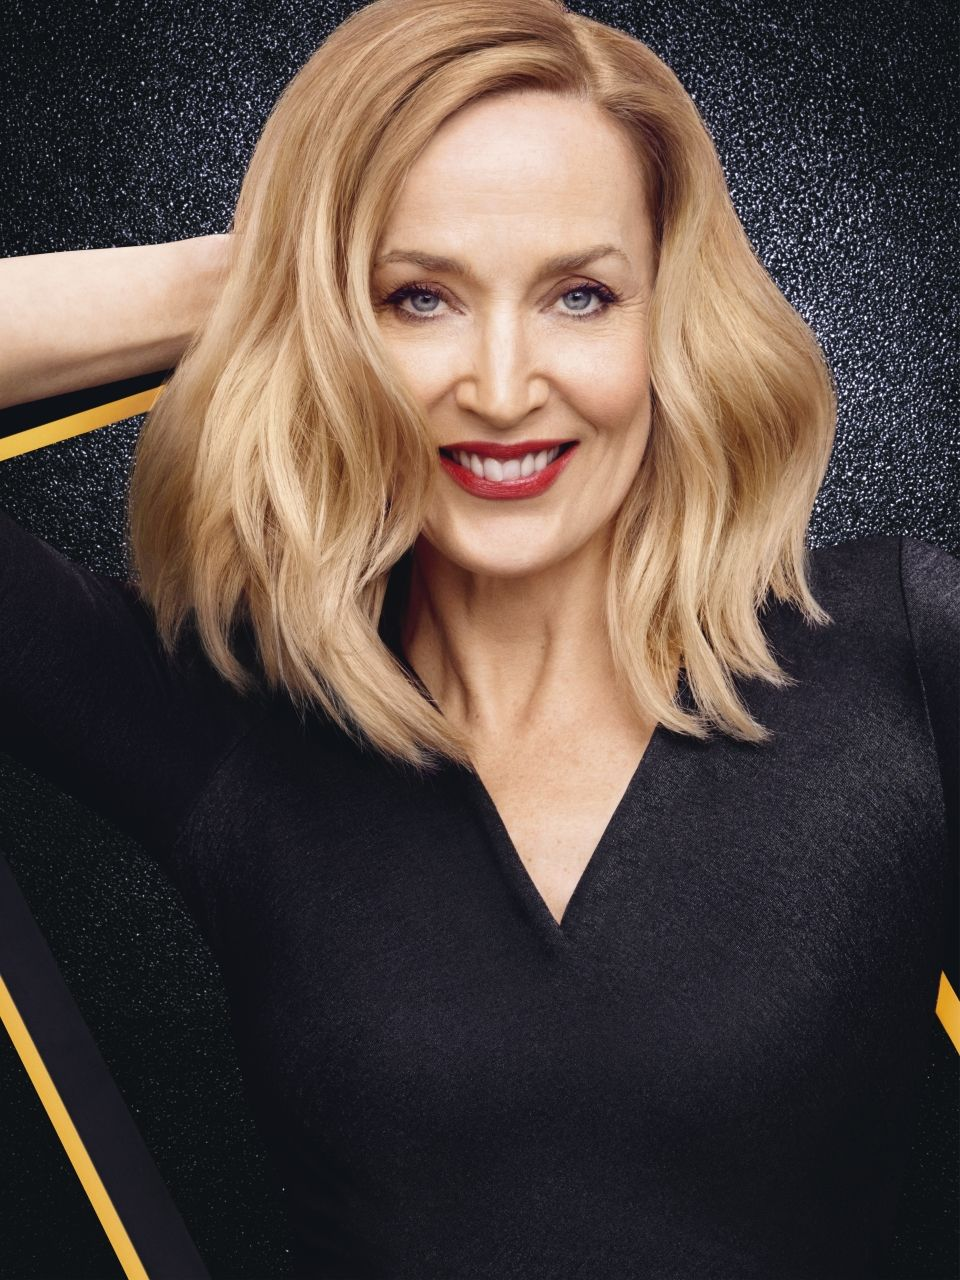 2019 year for lady- Trend beauty the lob